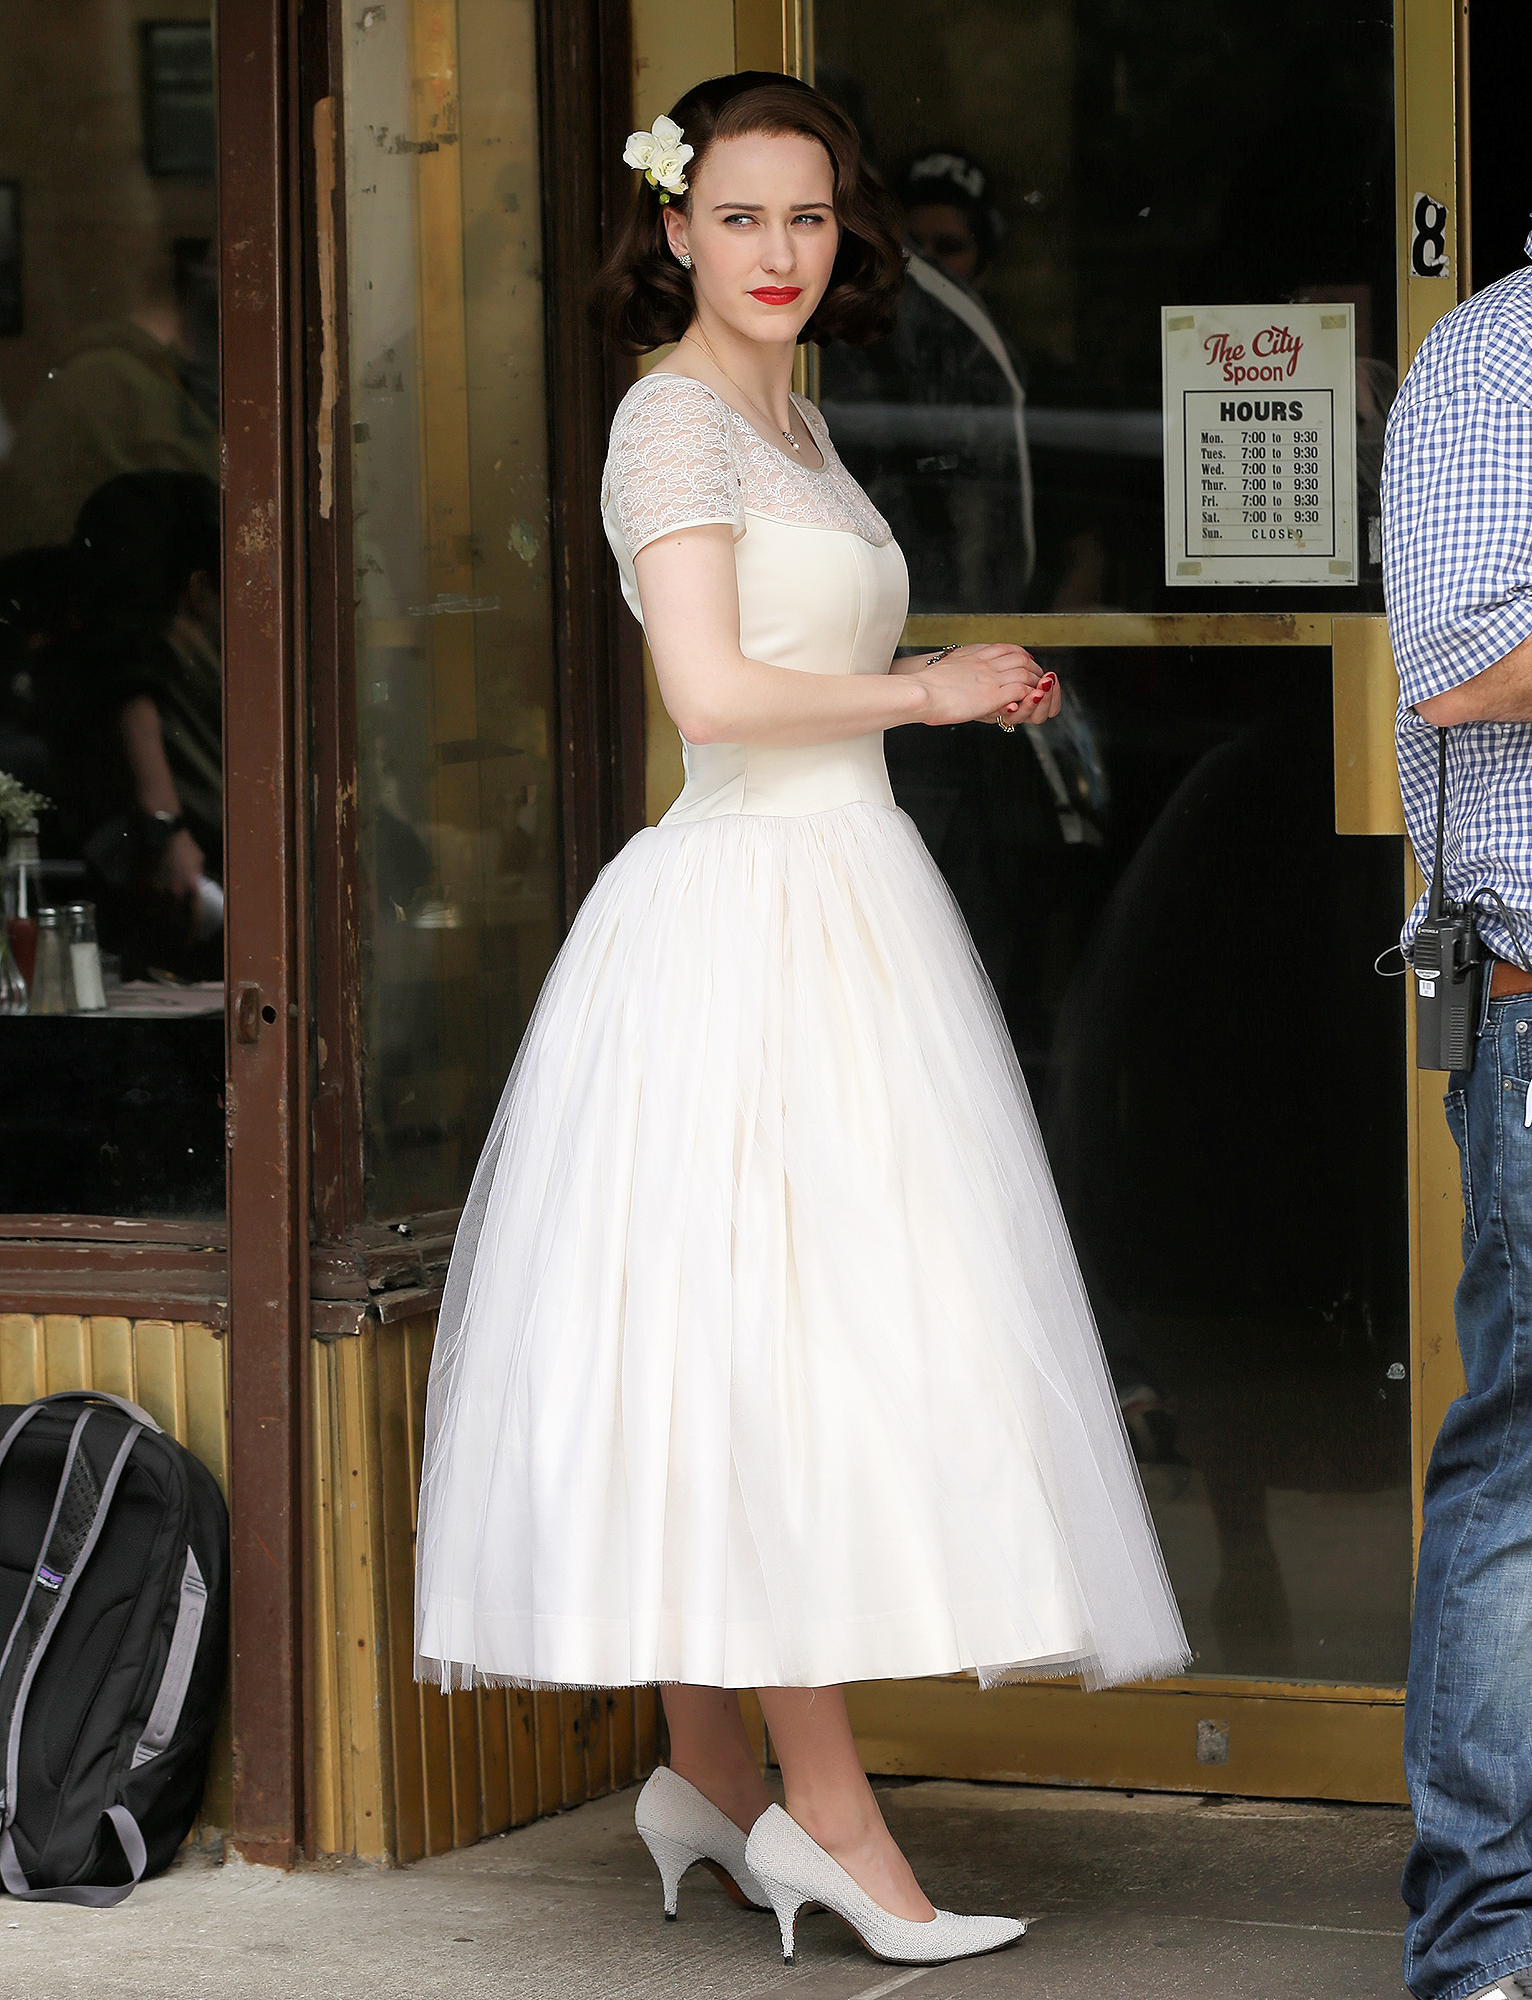 EXCLUSIVE: Actress Rachel Brosnahan, wearing a white evening dress, films 'The Marvelous Mrs. Maisel' in West Village in New York